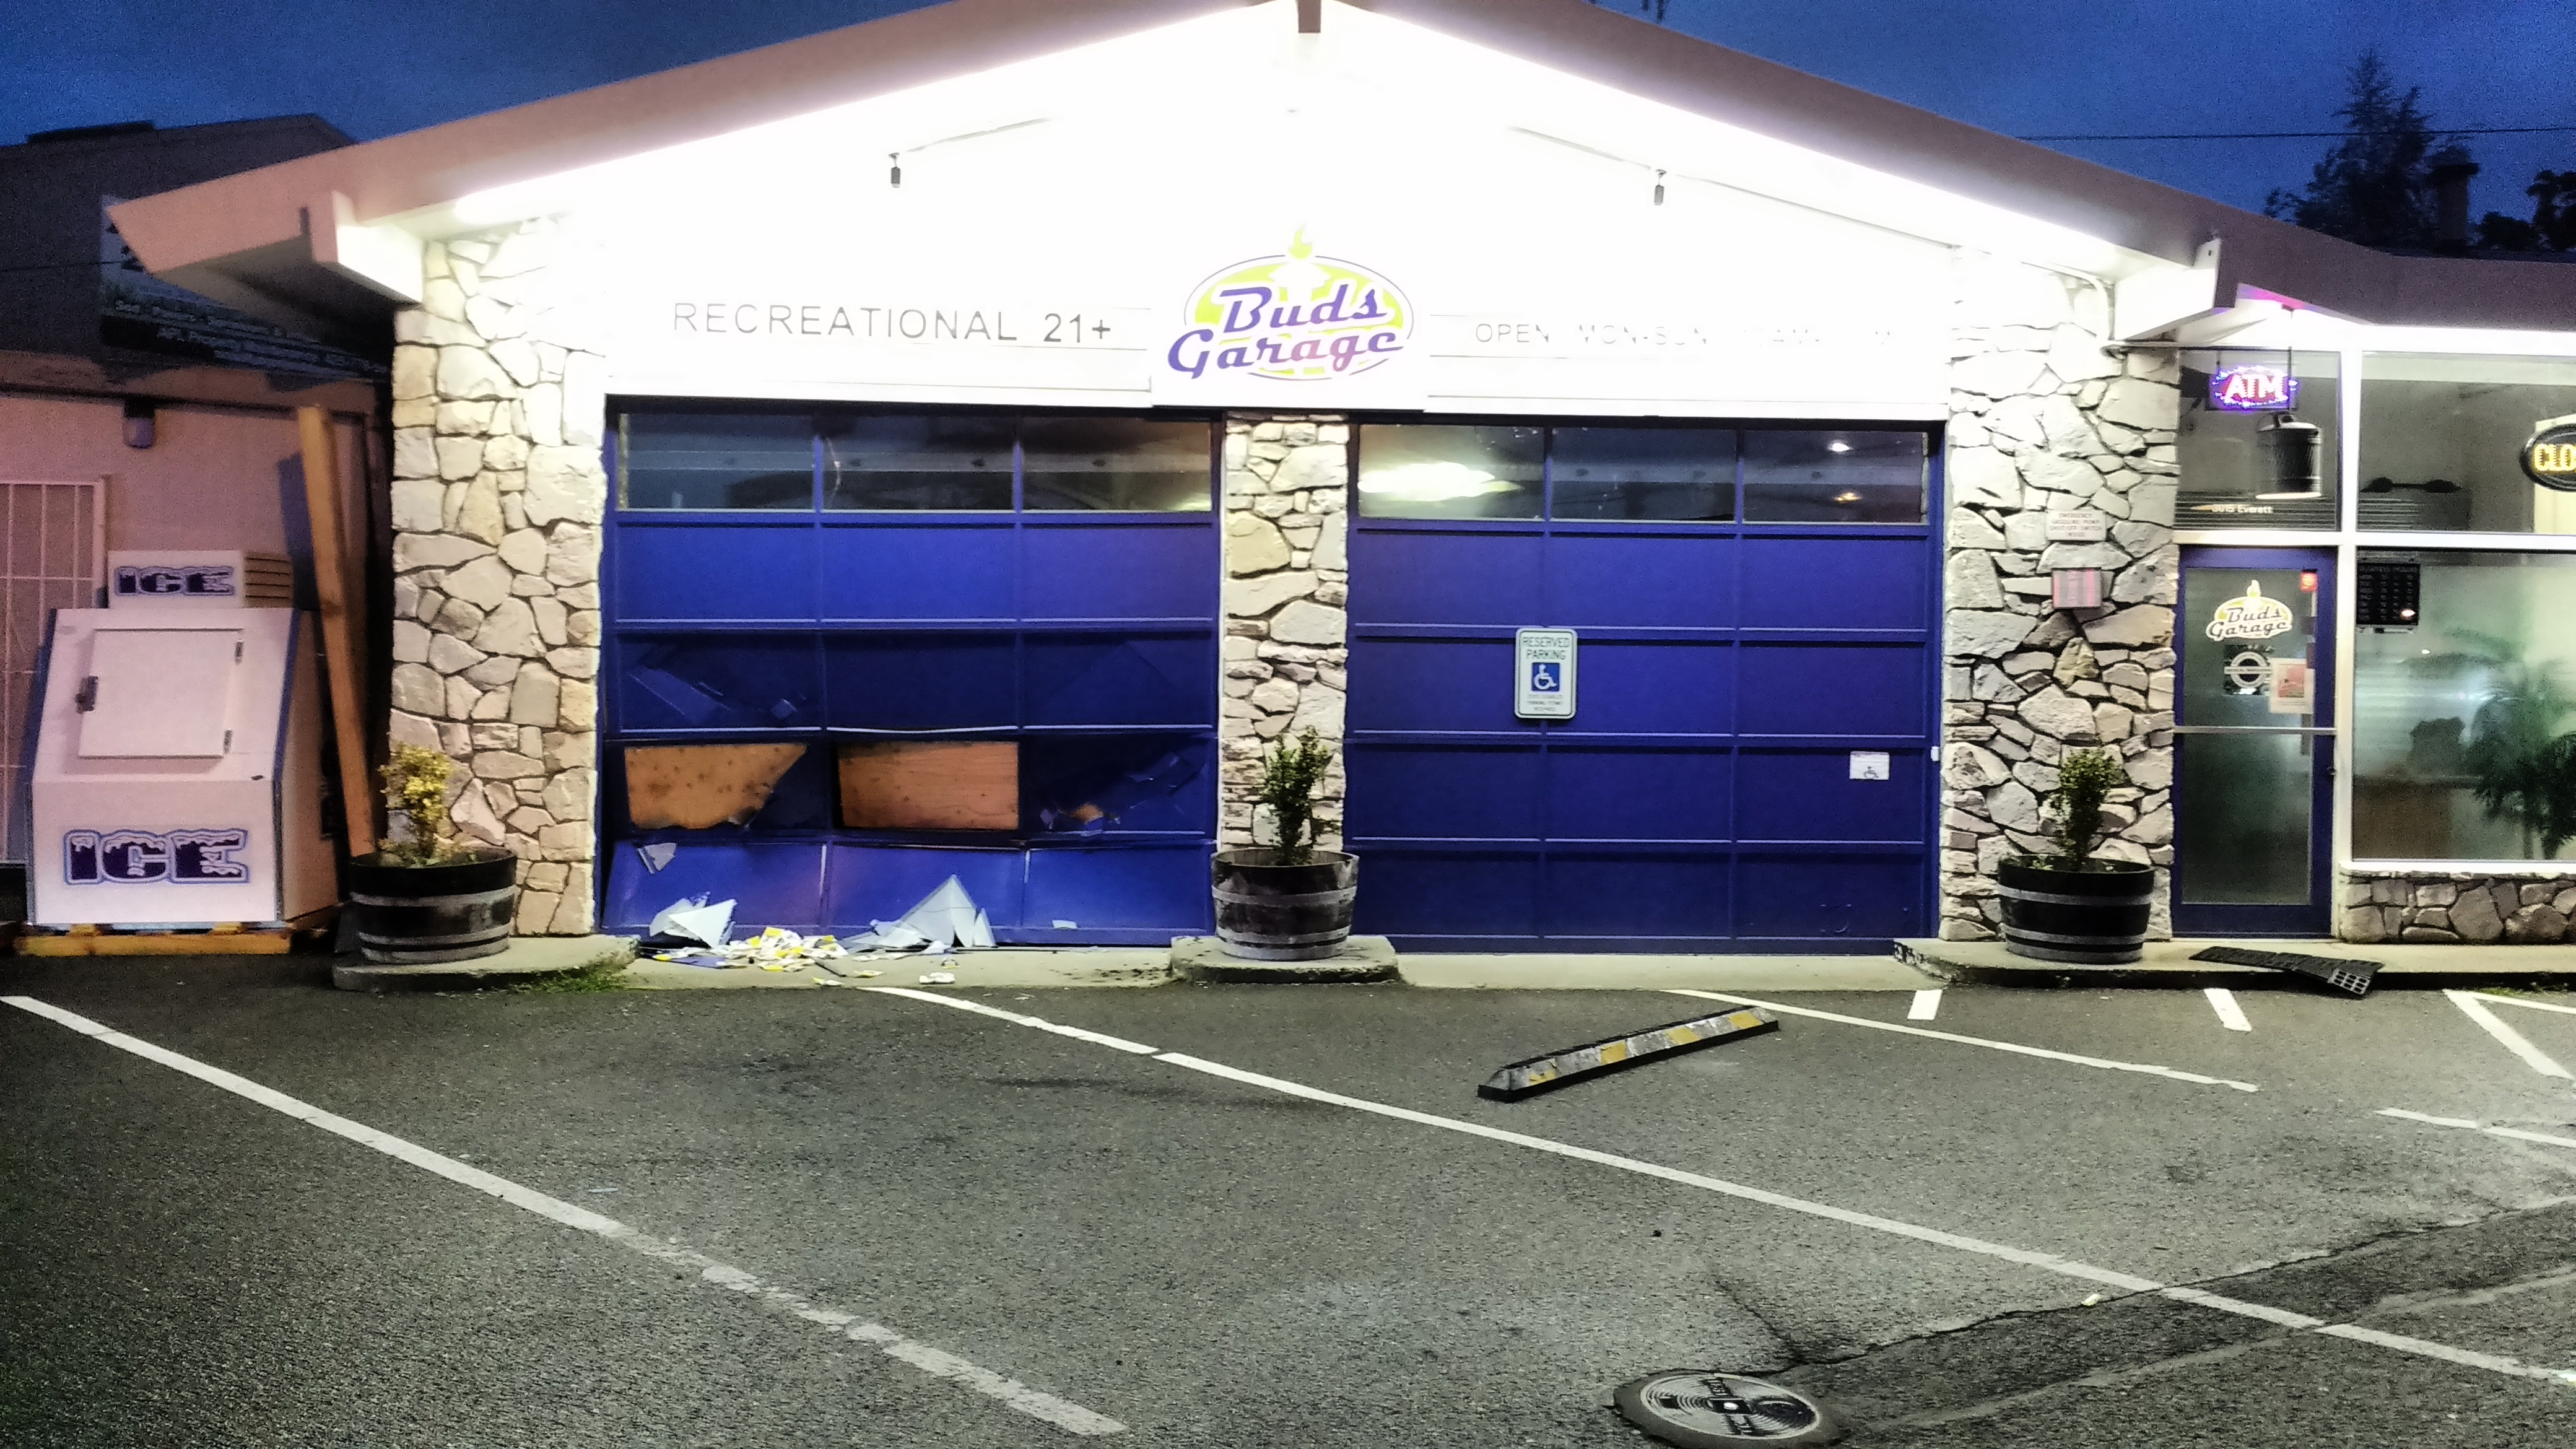 Smash and grab burglars hit stores in everett myeverettnews a vehicle was driven into the front of the store buds garage rubansaba